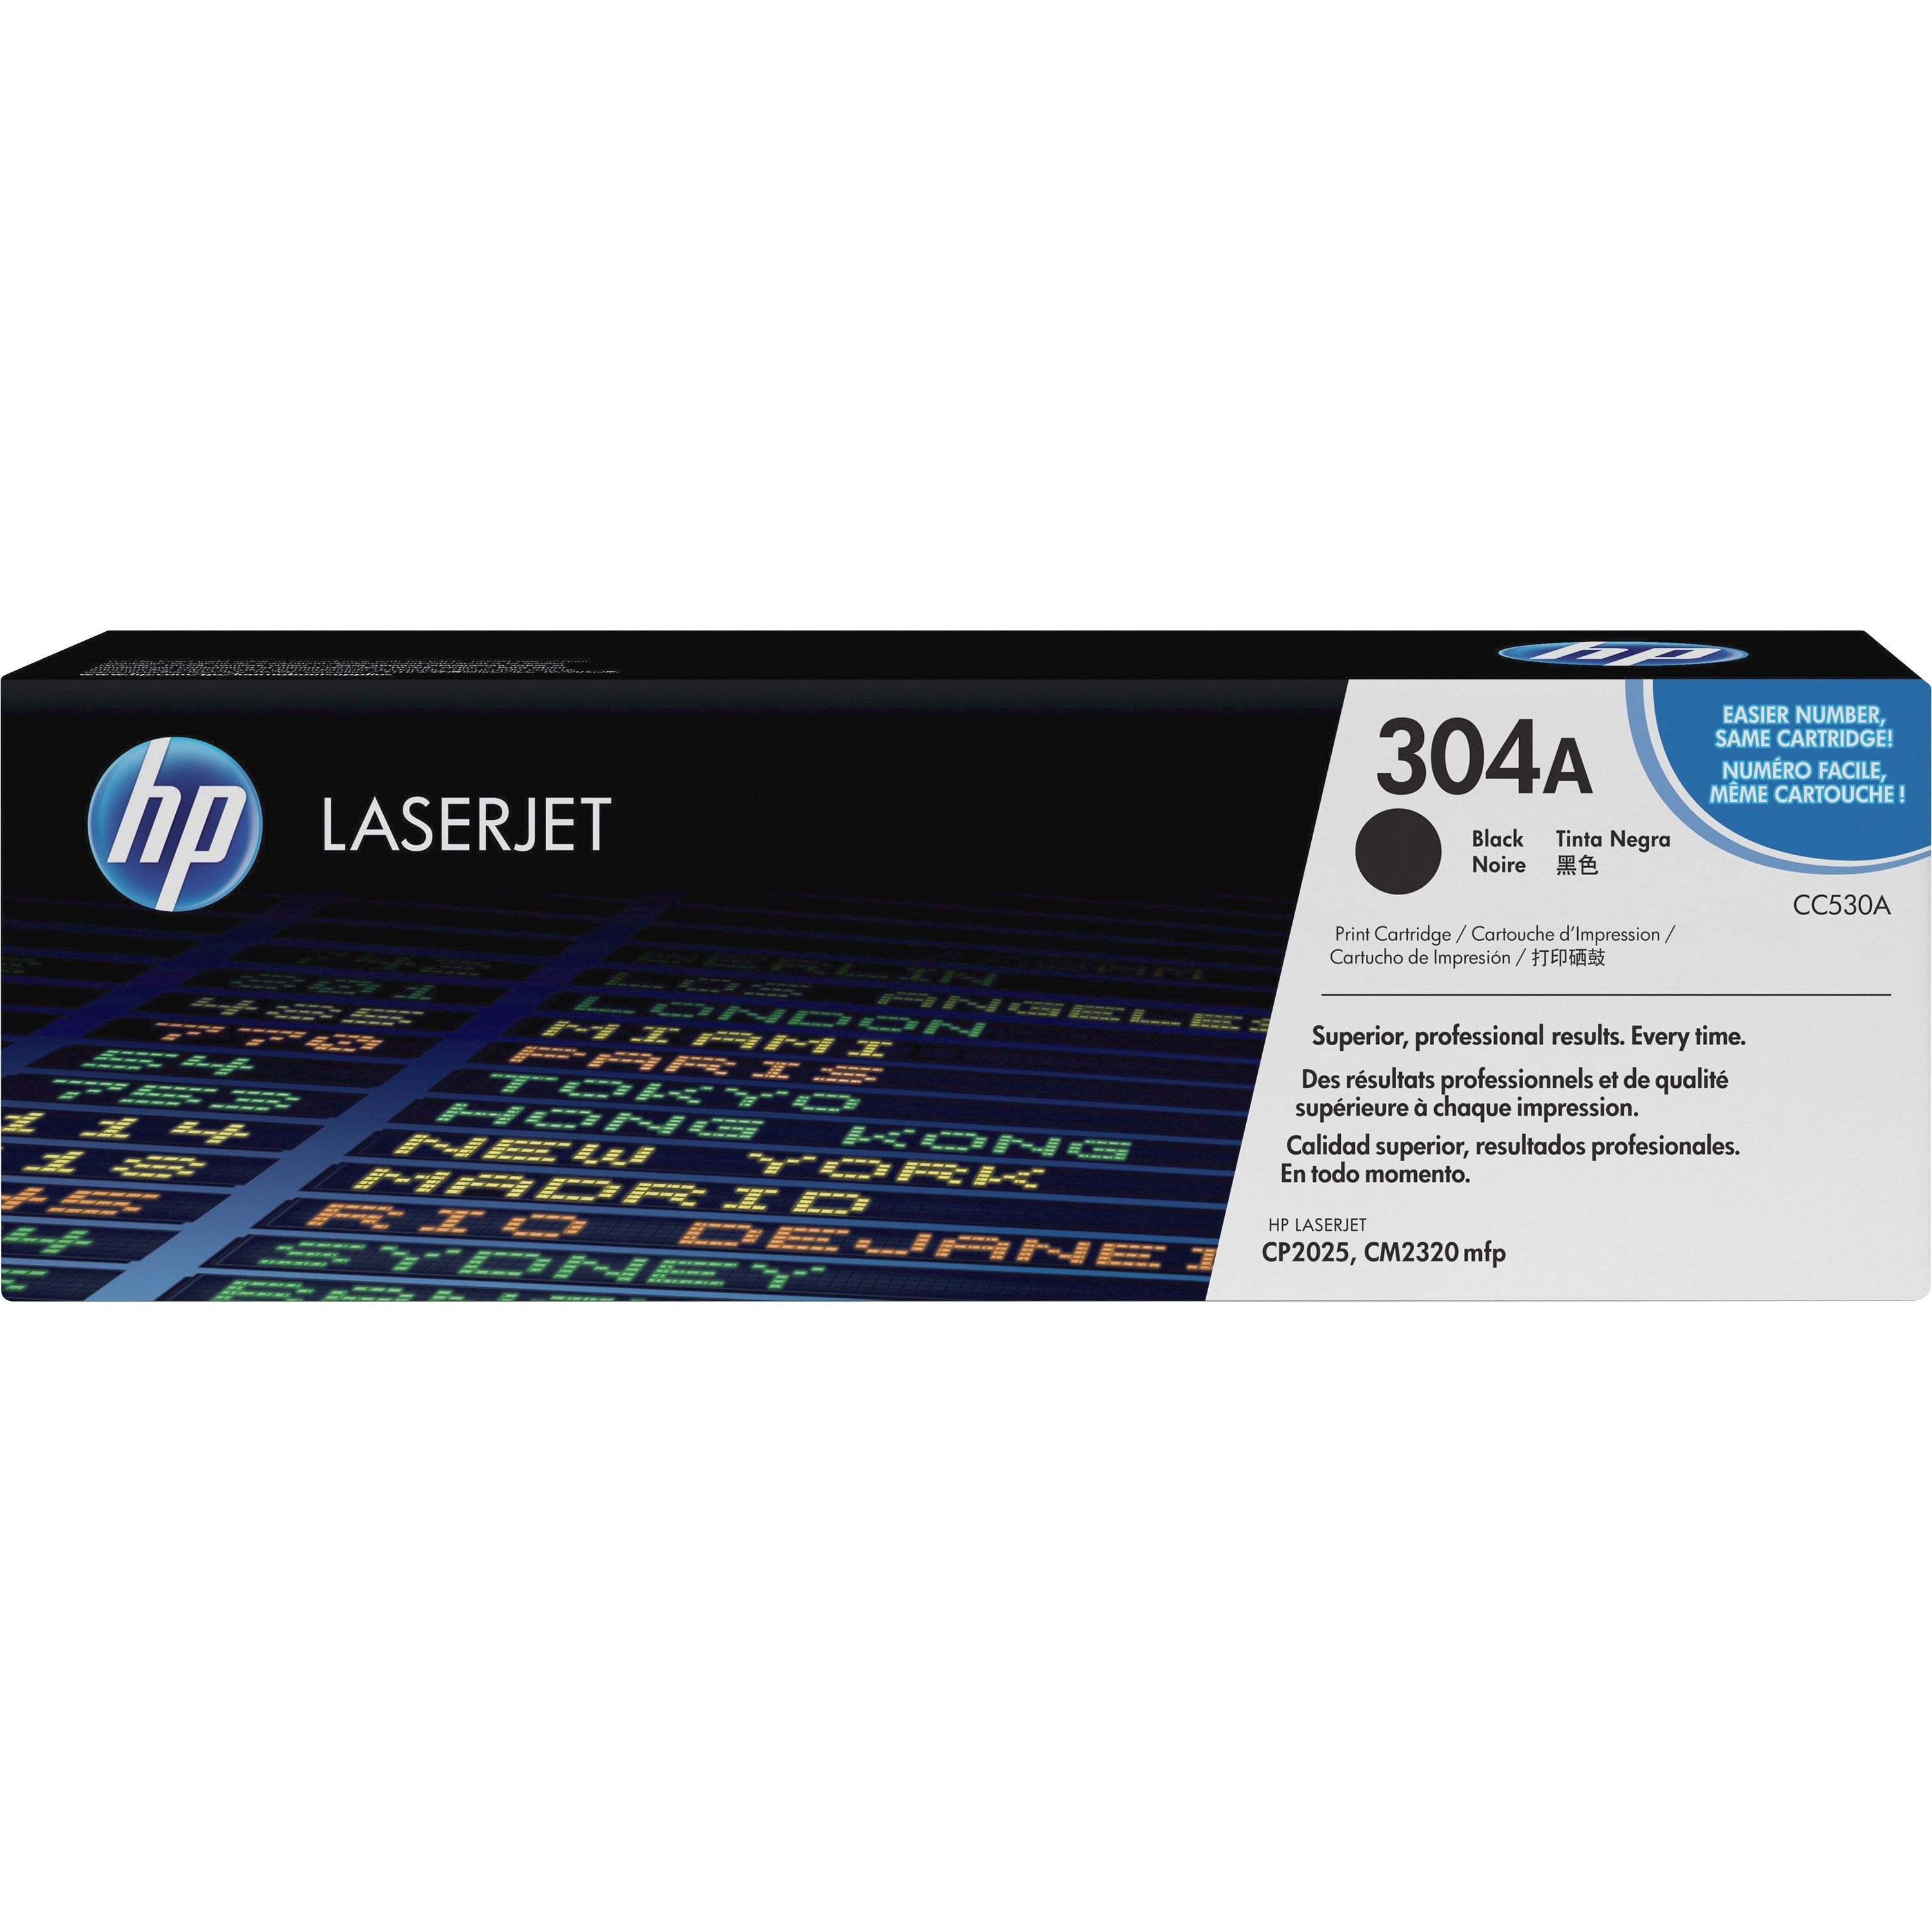 HP 304A (CC530A) Black Original LJ Toner Cartridge